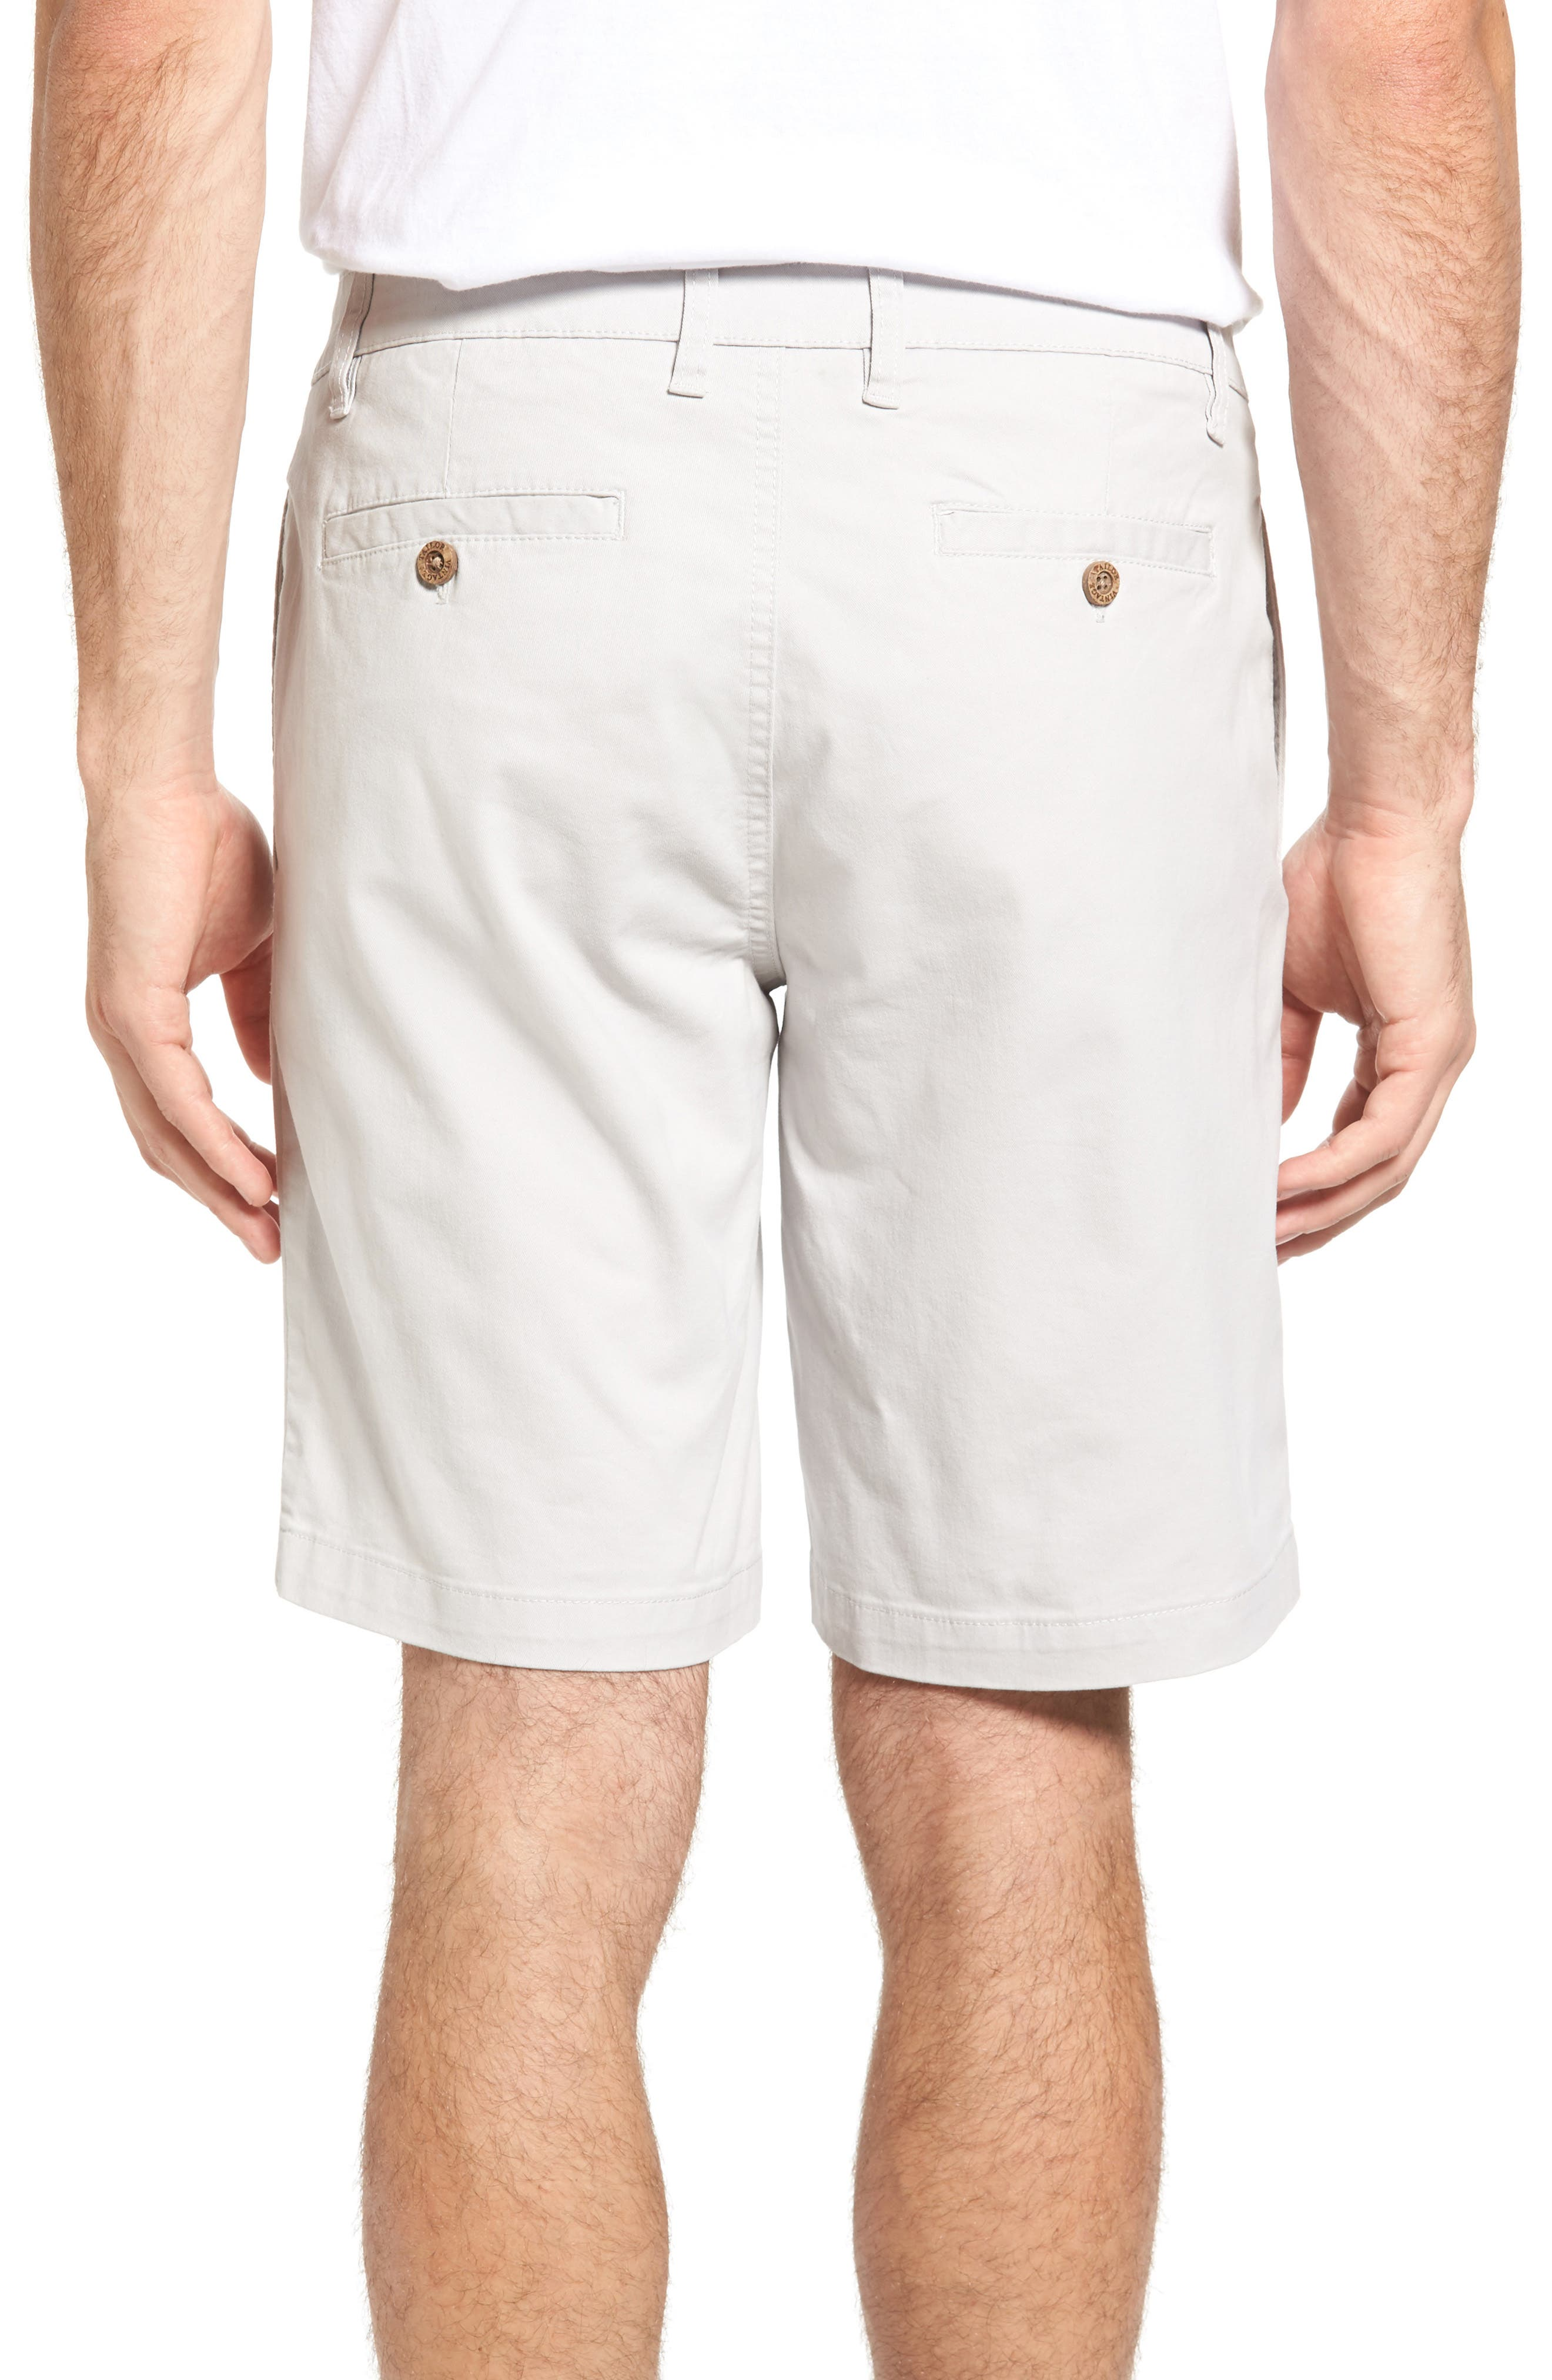 Stretch Twill Walking Shorts,                             Alternate thumbnail 2, color,                             050